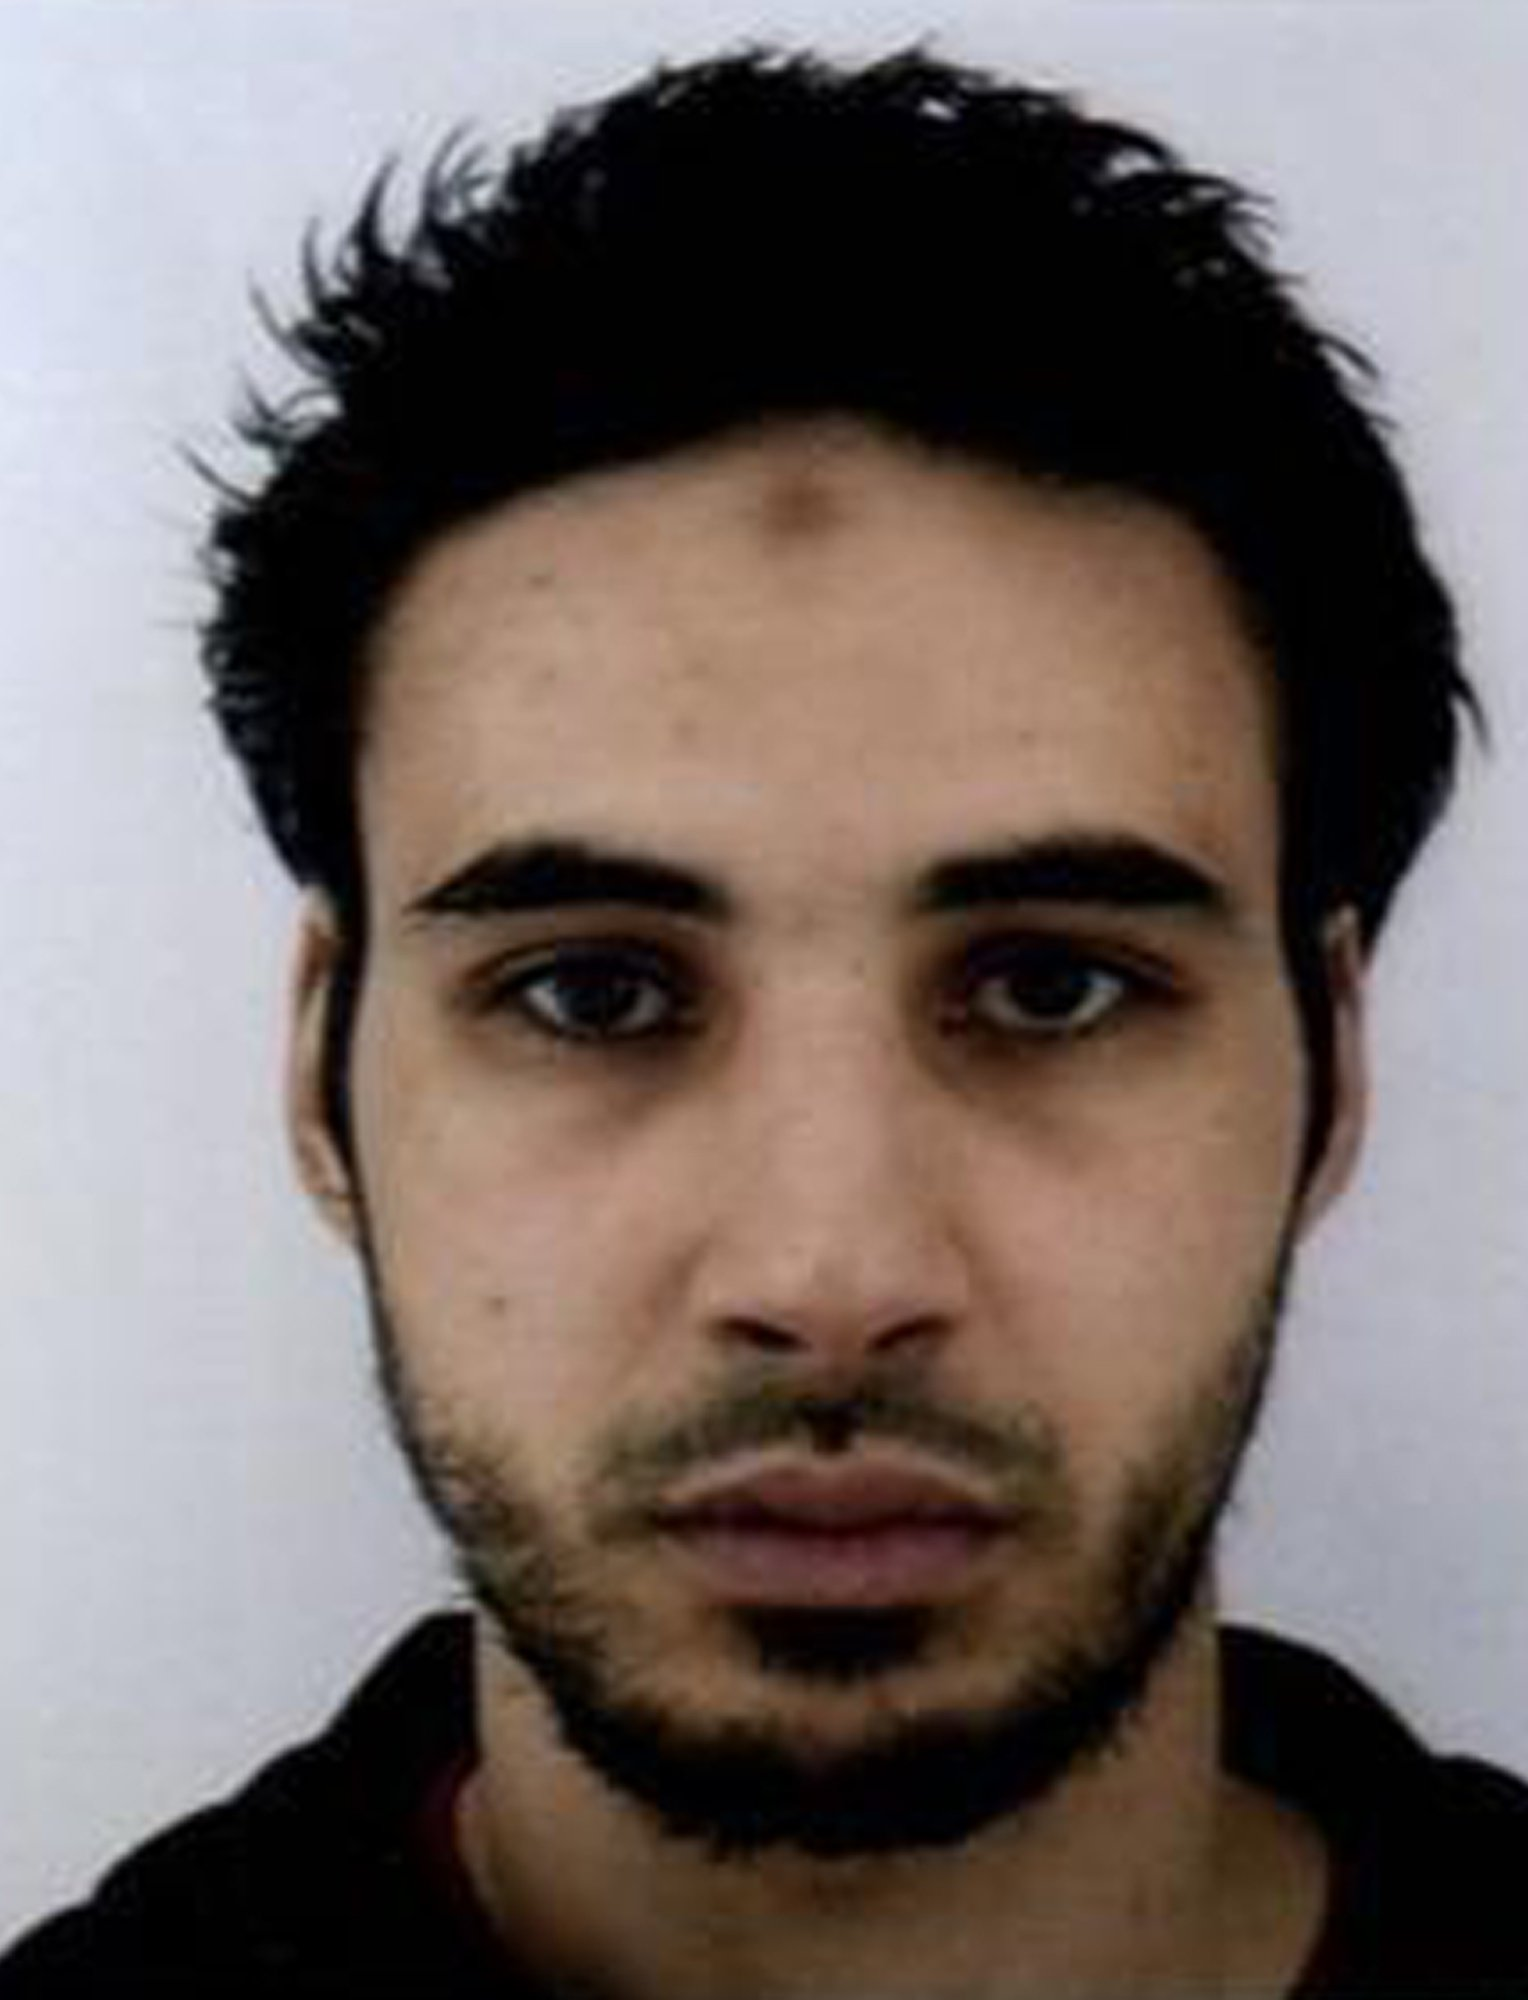 This undated handout photo provided by the French police, shows Cherif Chekatt, the suspect in the shooting in Strasbourg, France on Tuesday Dec. 11, 2018. Police union officials identified the suspected assailant as Cherif Chekatt, a 29-year-old with a thick police record for crimes including armed robbery and monitored as a suspected religious radical by the French intelligence services. The suspect sprayed gunfire near the famous Christmas market in the eastern French city, killing three people, wounding up to a dozen and sparking a massive manhunt when he got away. (French Police via AP)